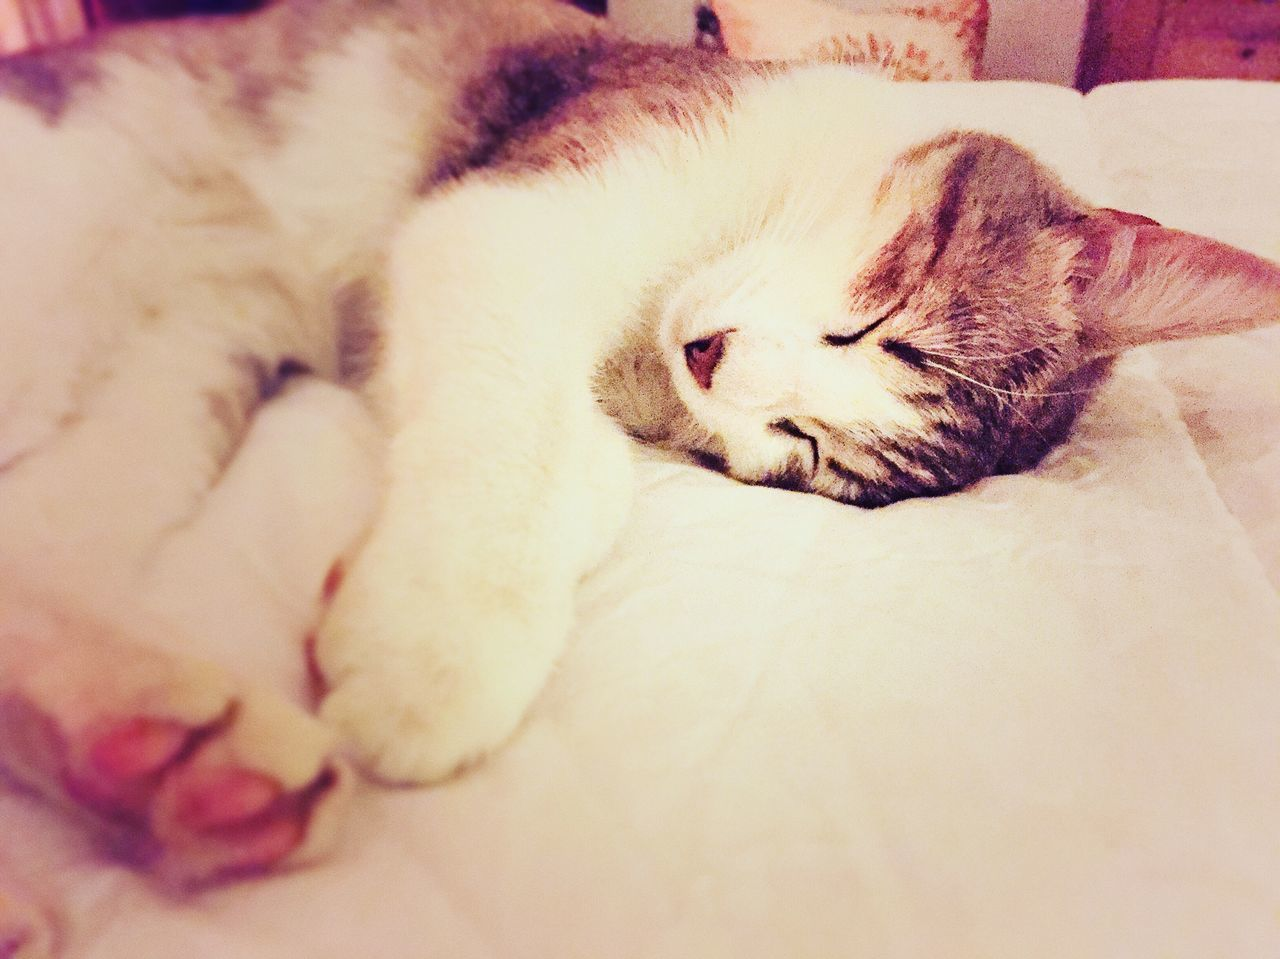 domestic cat, sleeping, pets, domestic animals, one animal, animal themes, mammal, feline, cat, resting, indoors, eyes closed, relaxation, lying down, no people, bed, close-up, nature, day